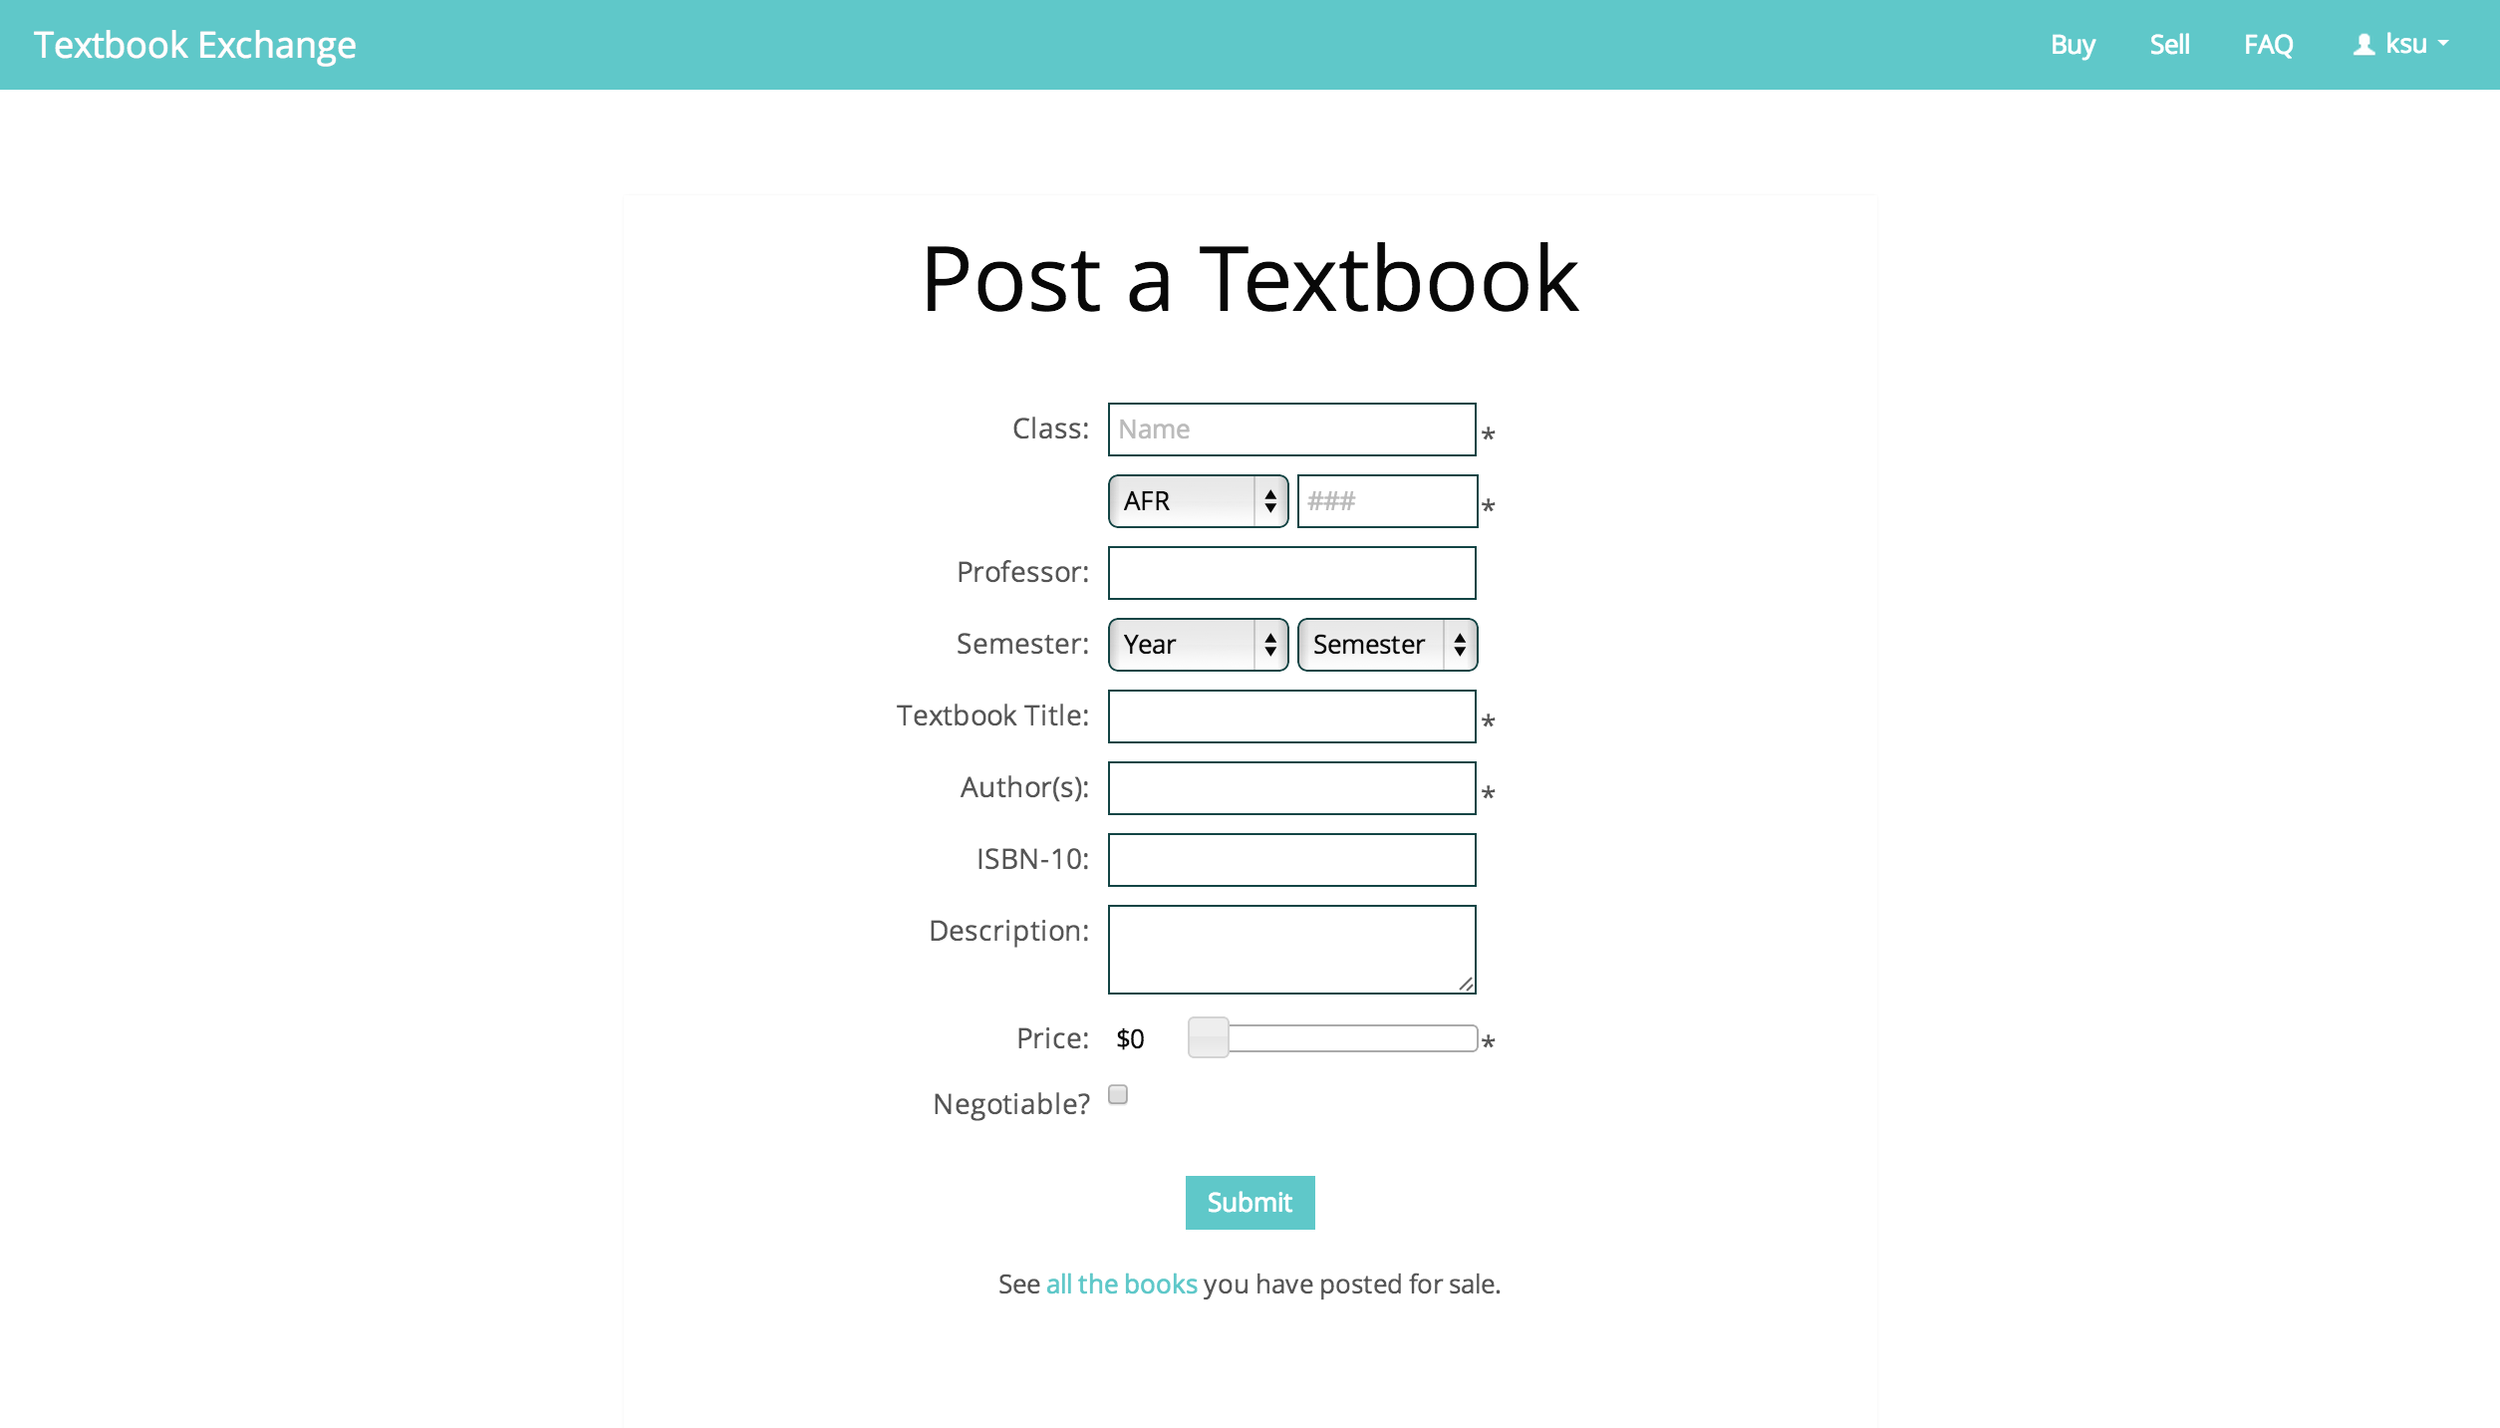 Selling: users can put a textbook up for sale within a minute